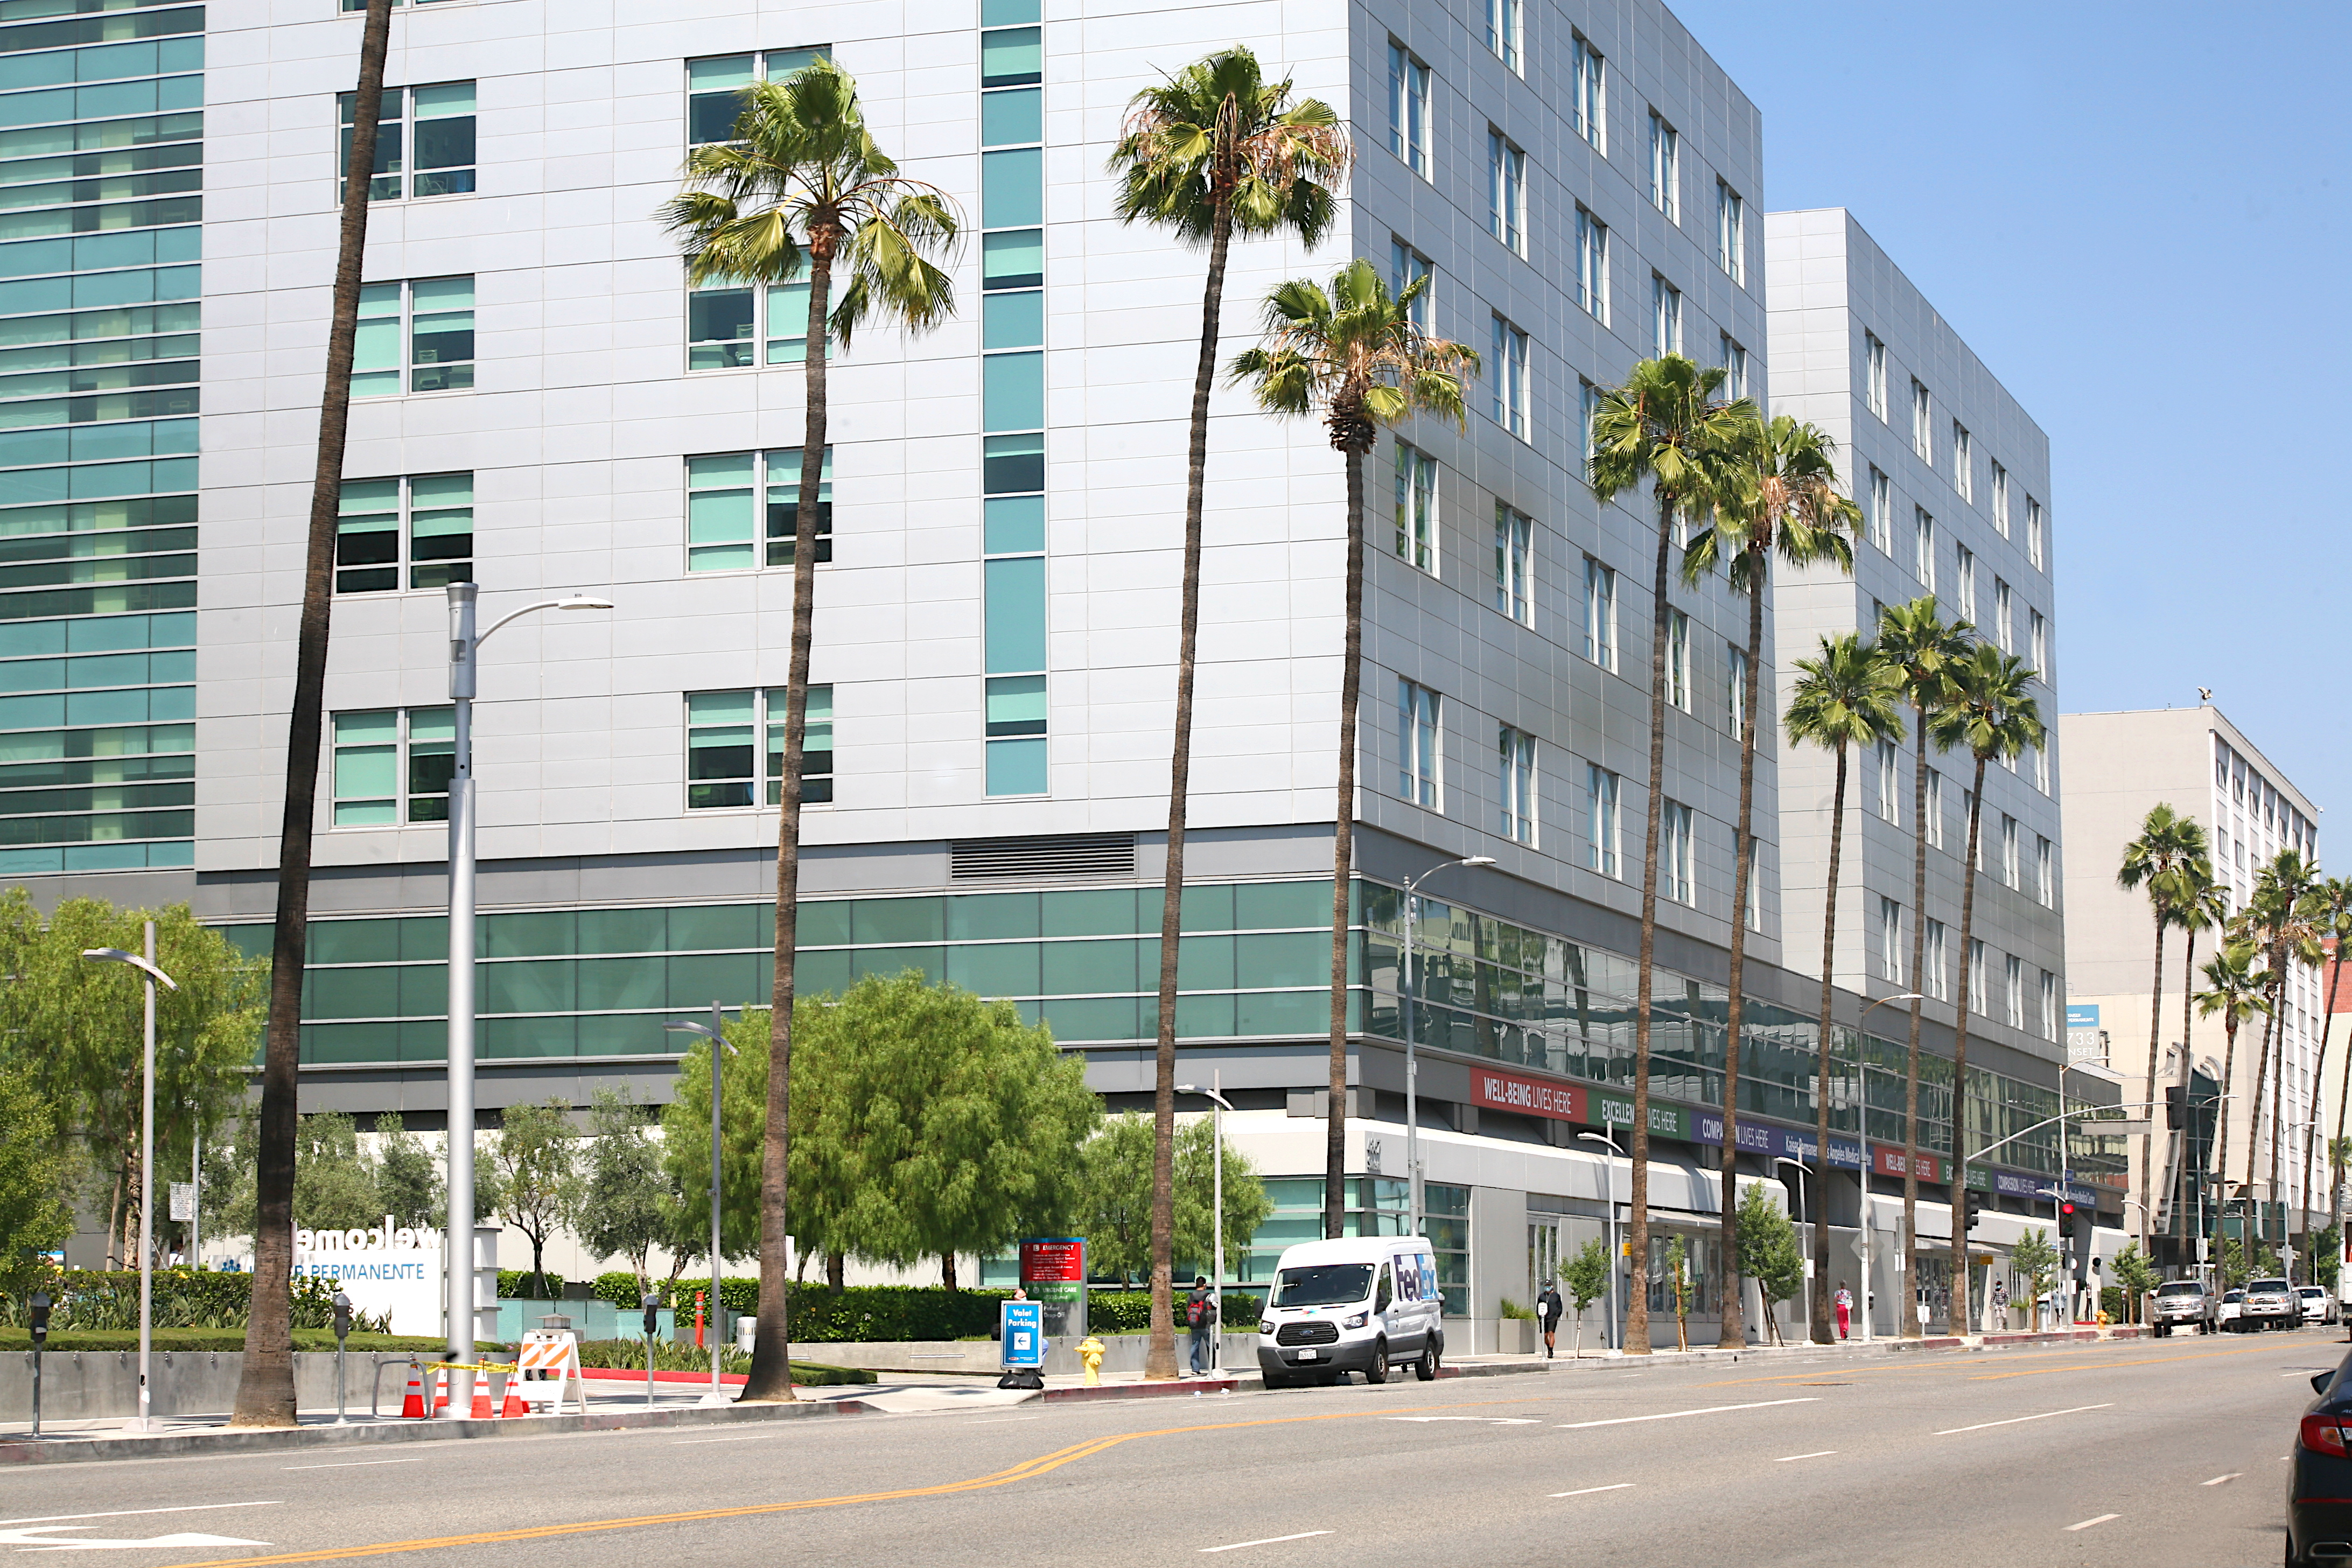 Kaiser Permanente Los Angeles Medical Center, from Sunset boulevard and Edgemont street